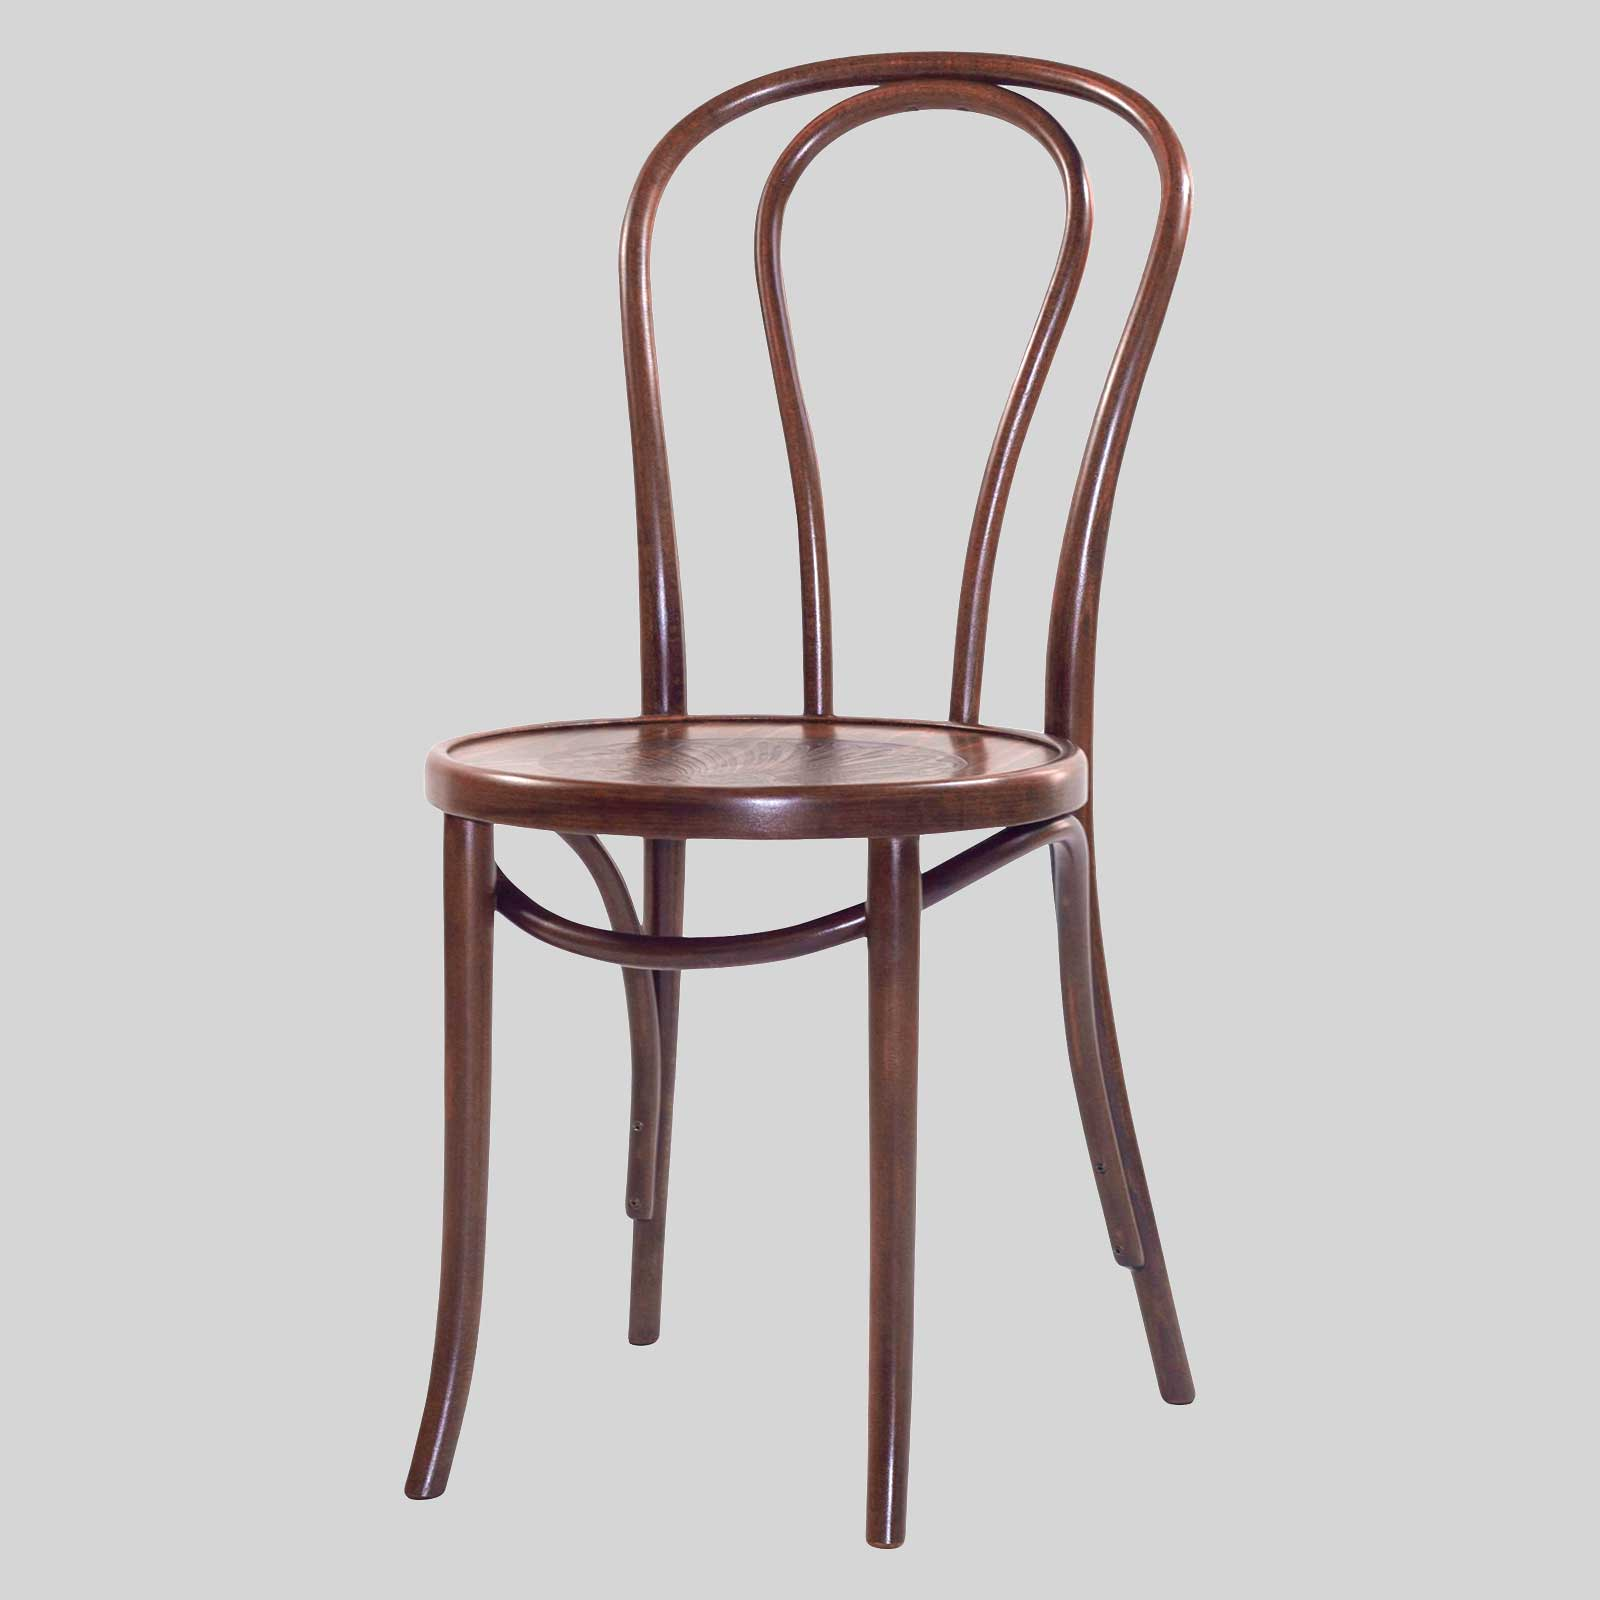 deitz chair wood product bentwood tavern model upholstered cafe hair bistro classic m chairs pin thonet traditional fully